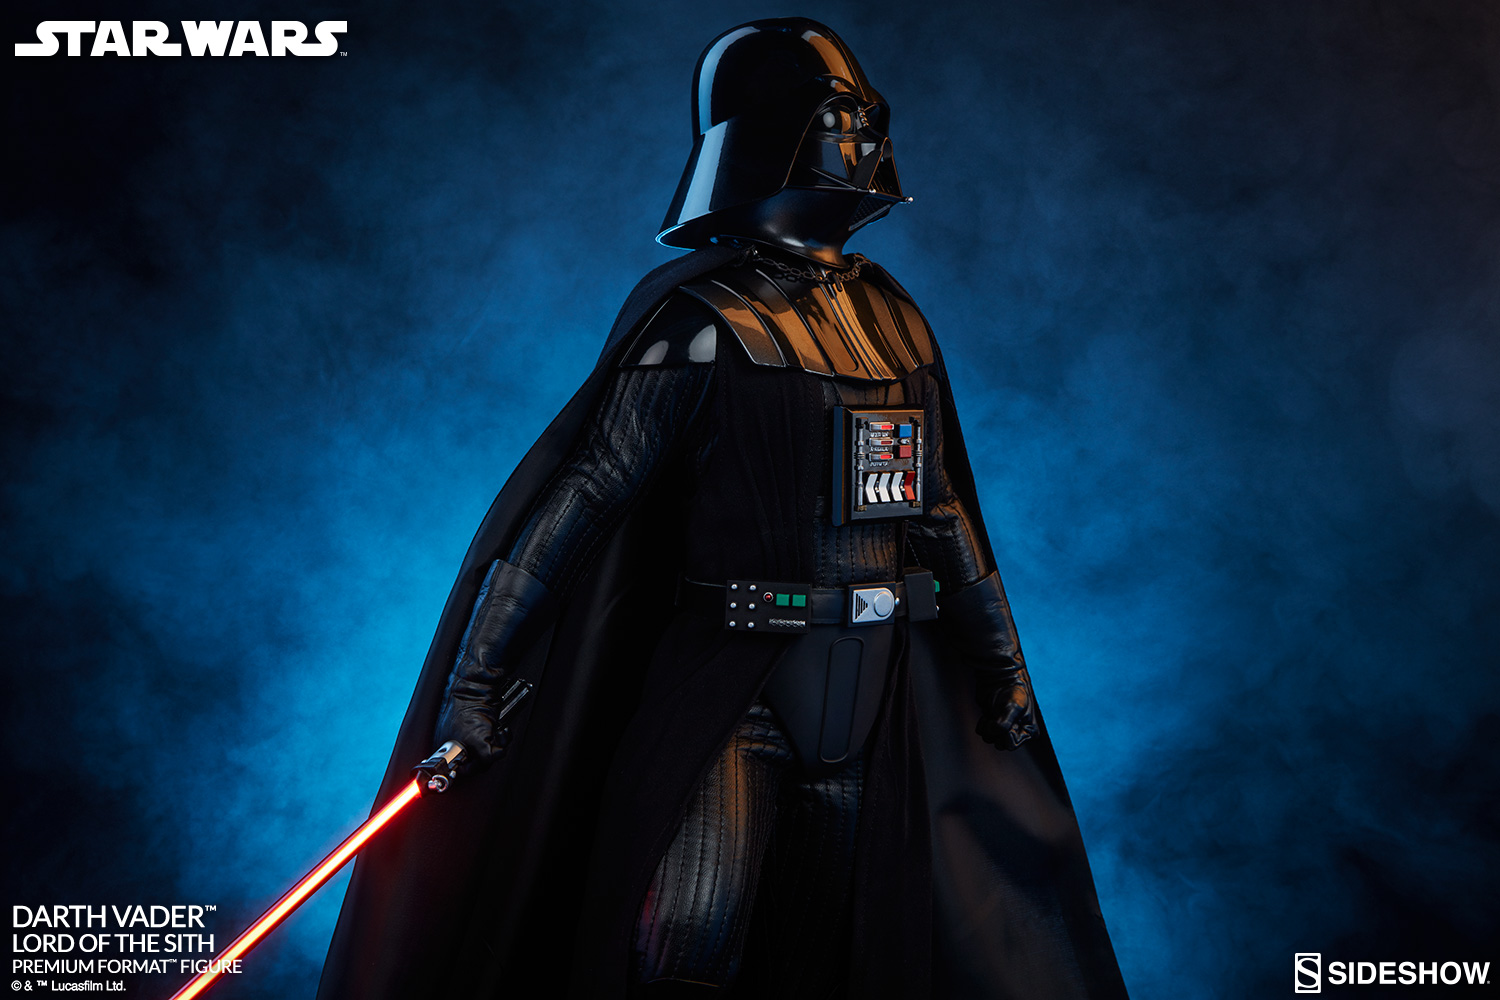 Top Ten Darth Vader Quotes Sideshow Collectibles